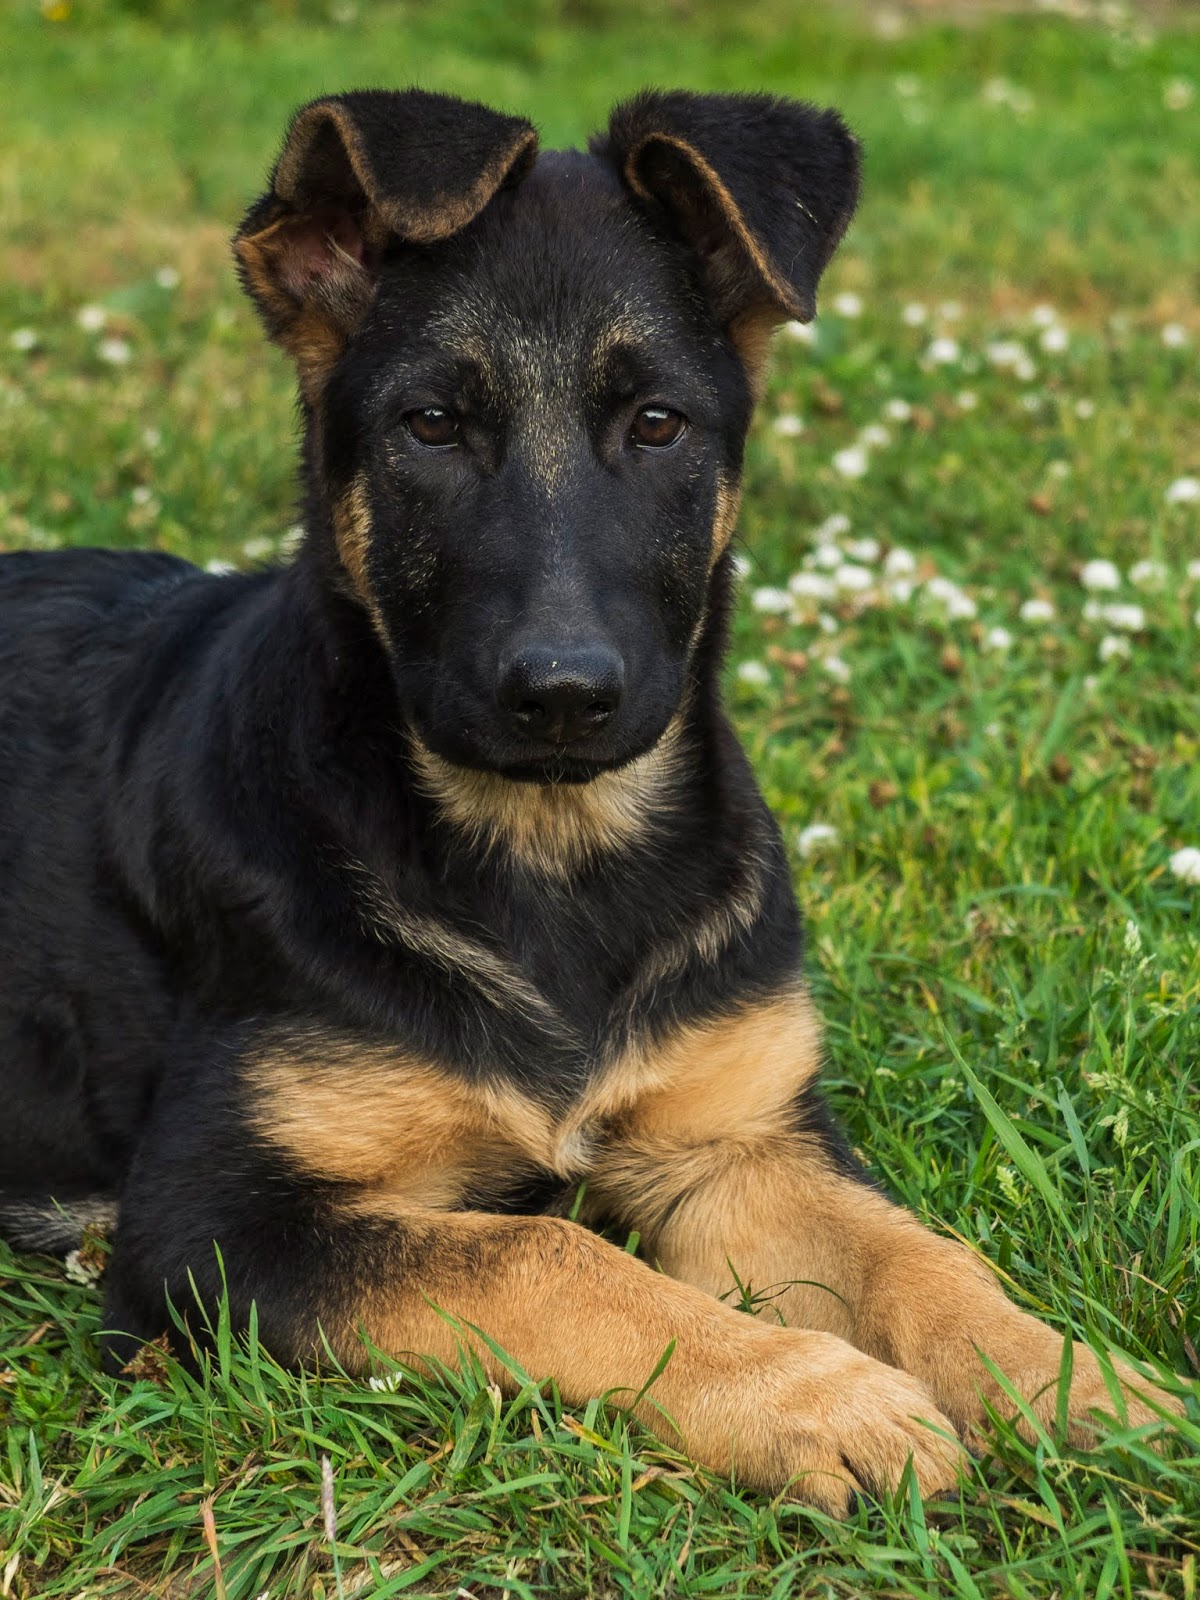 A portrait of a 3 month old German Shepherd puppy called Poppy lying on grass.